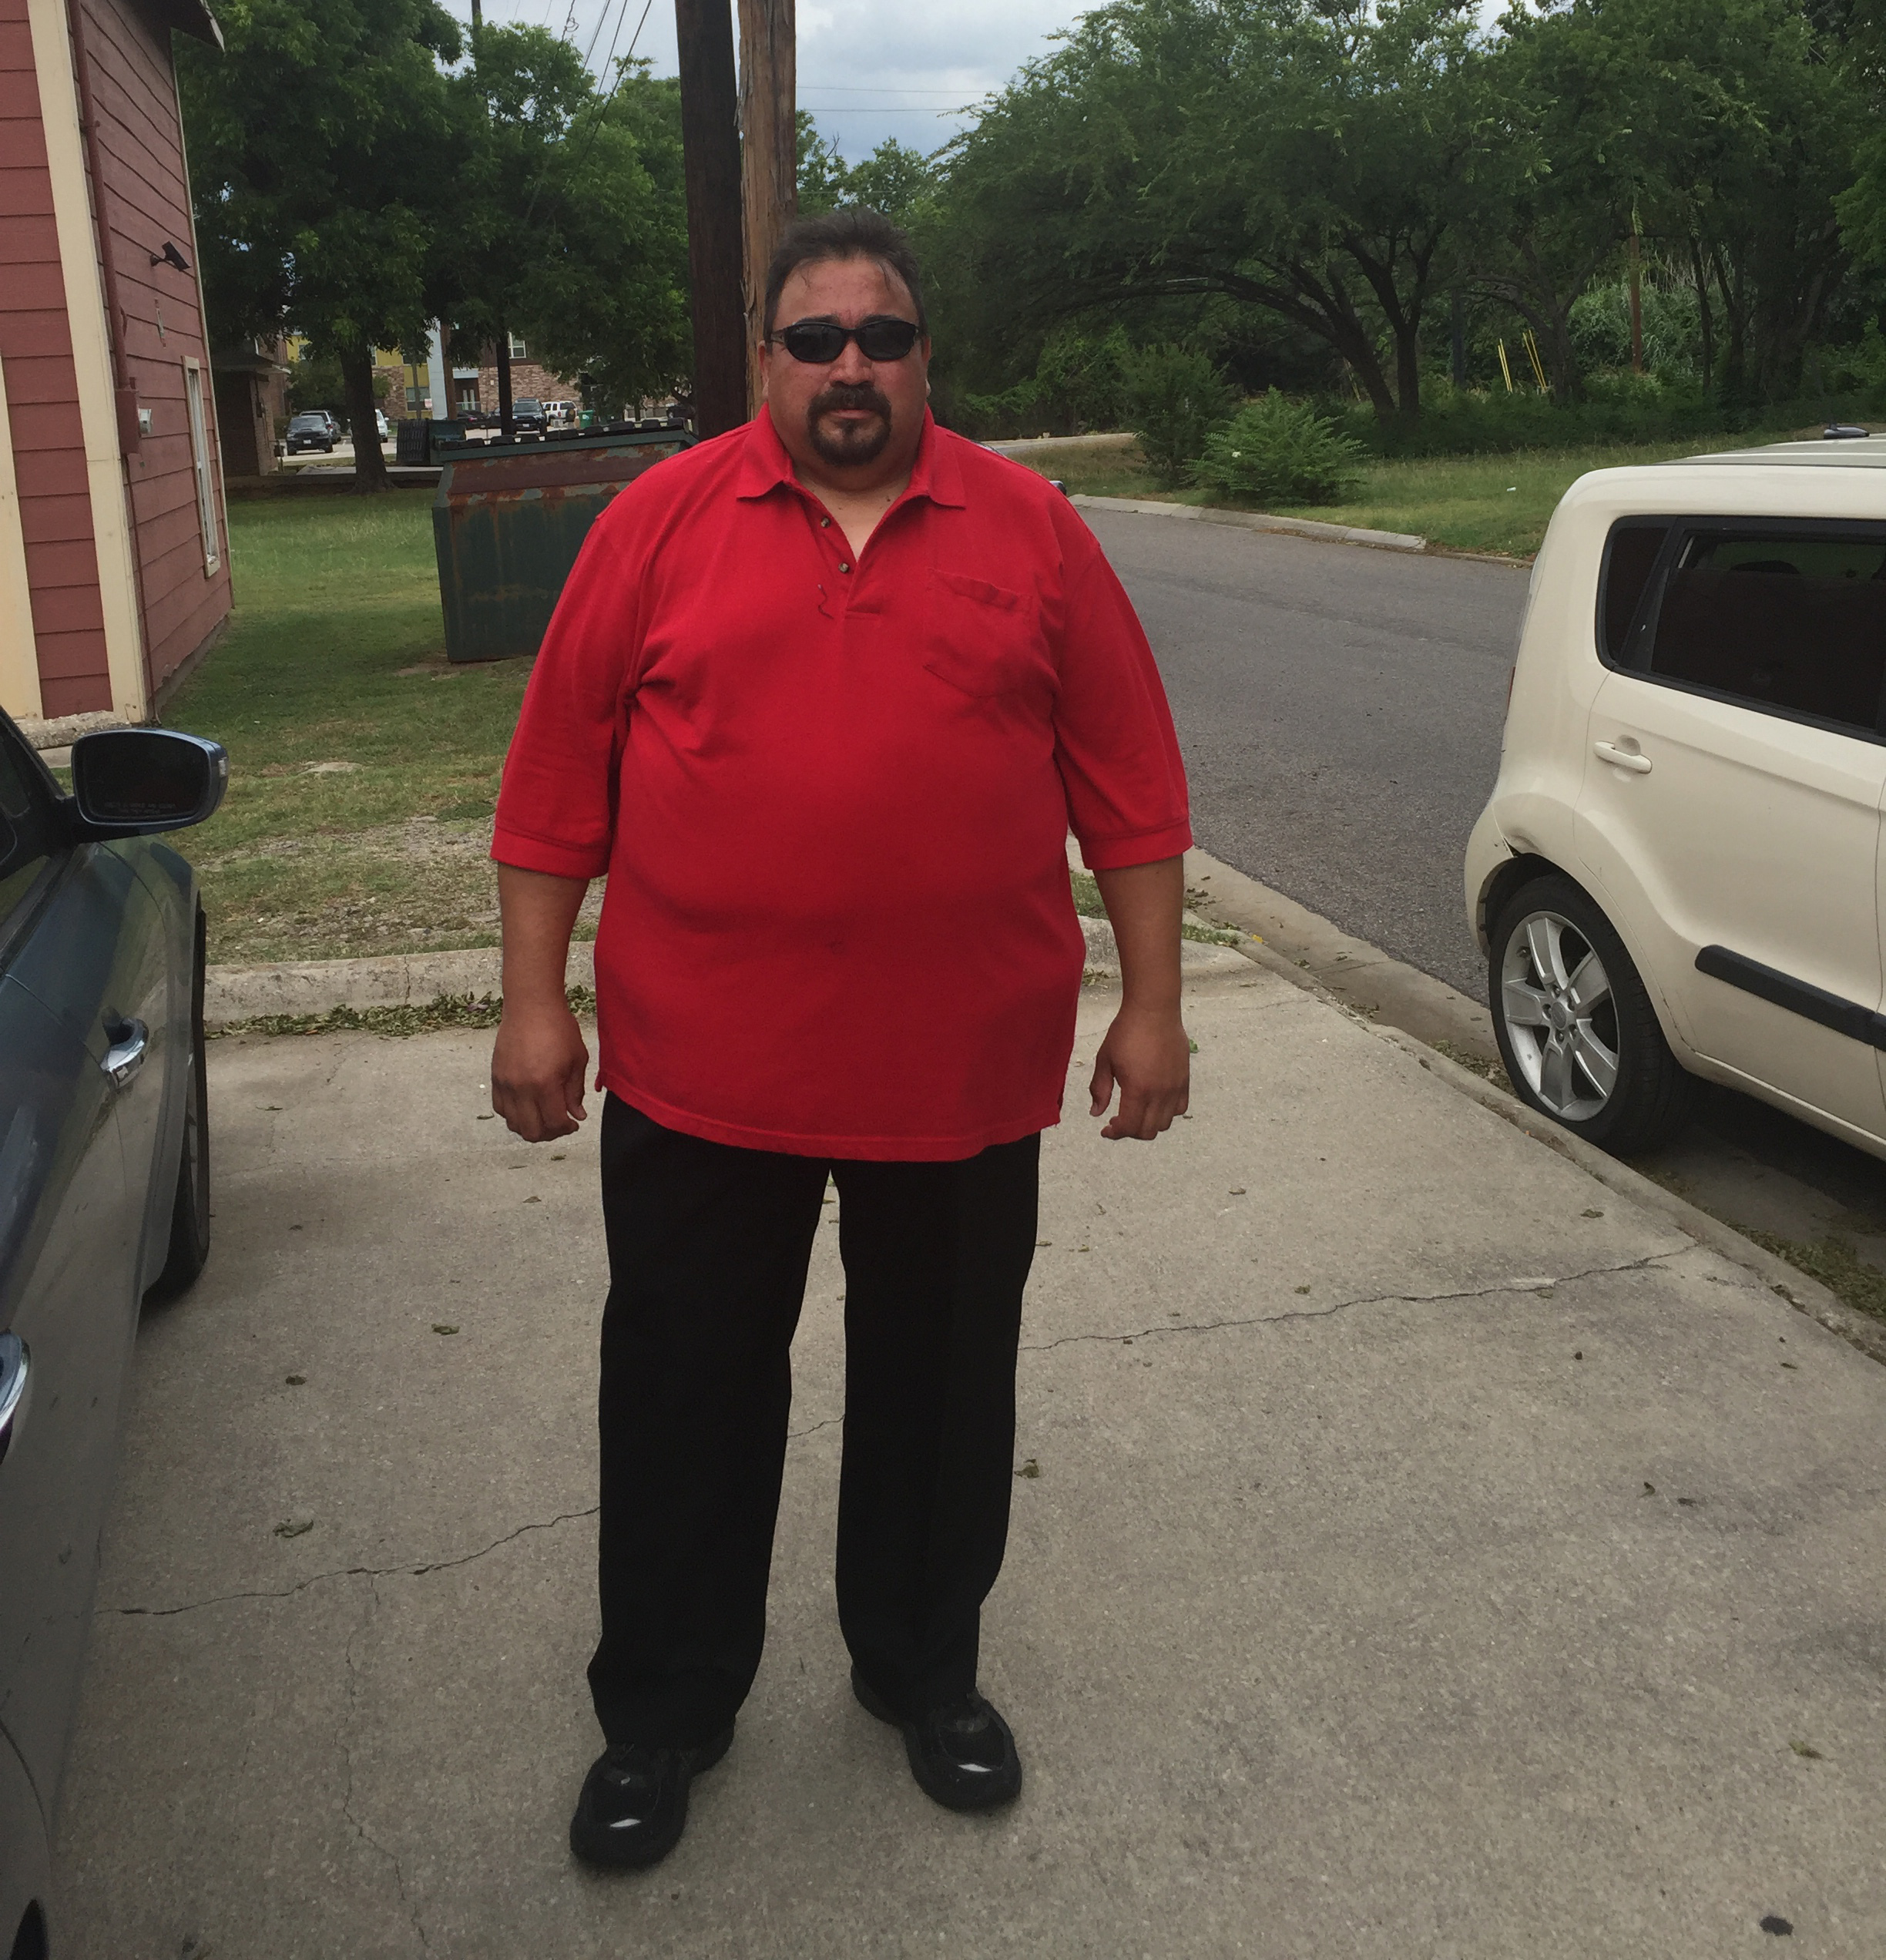 Joe at Vision Ministries in his new clothes for his first day of work.